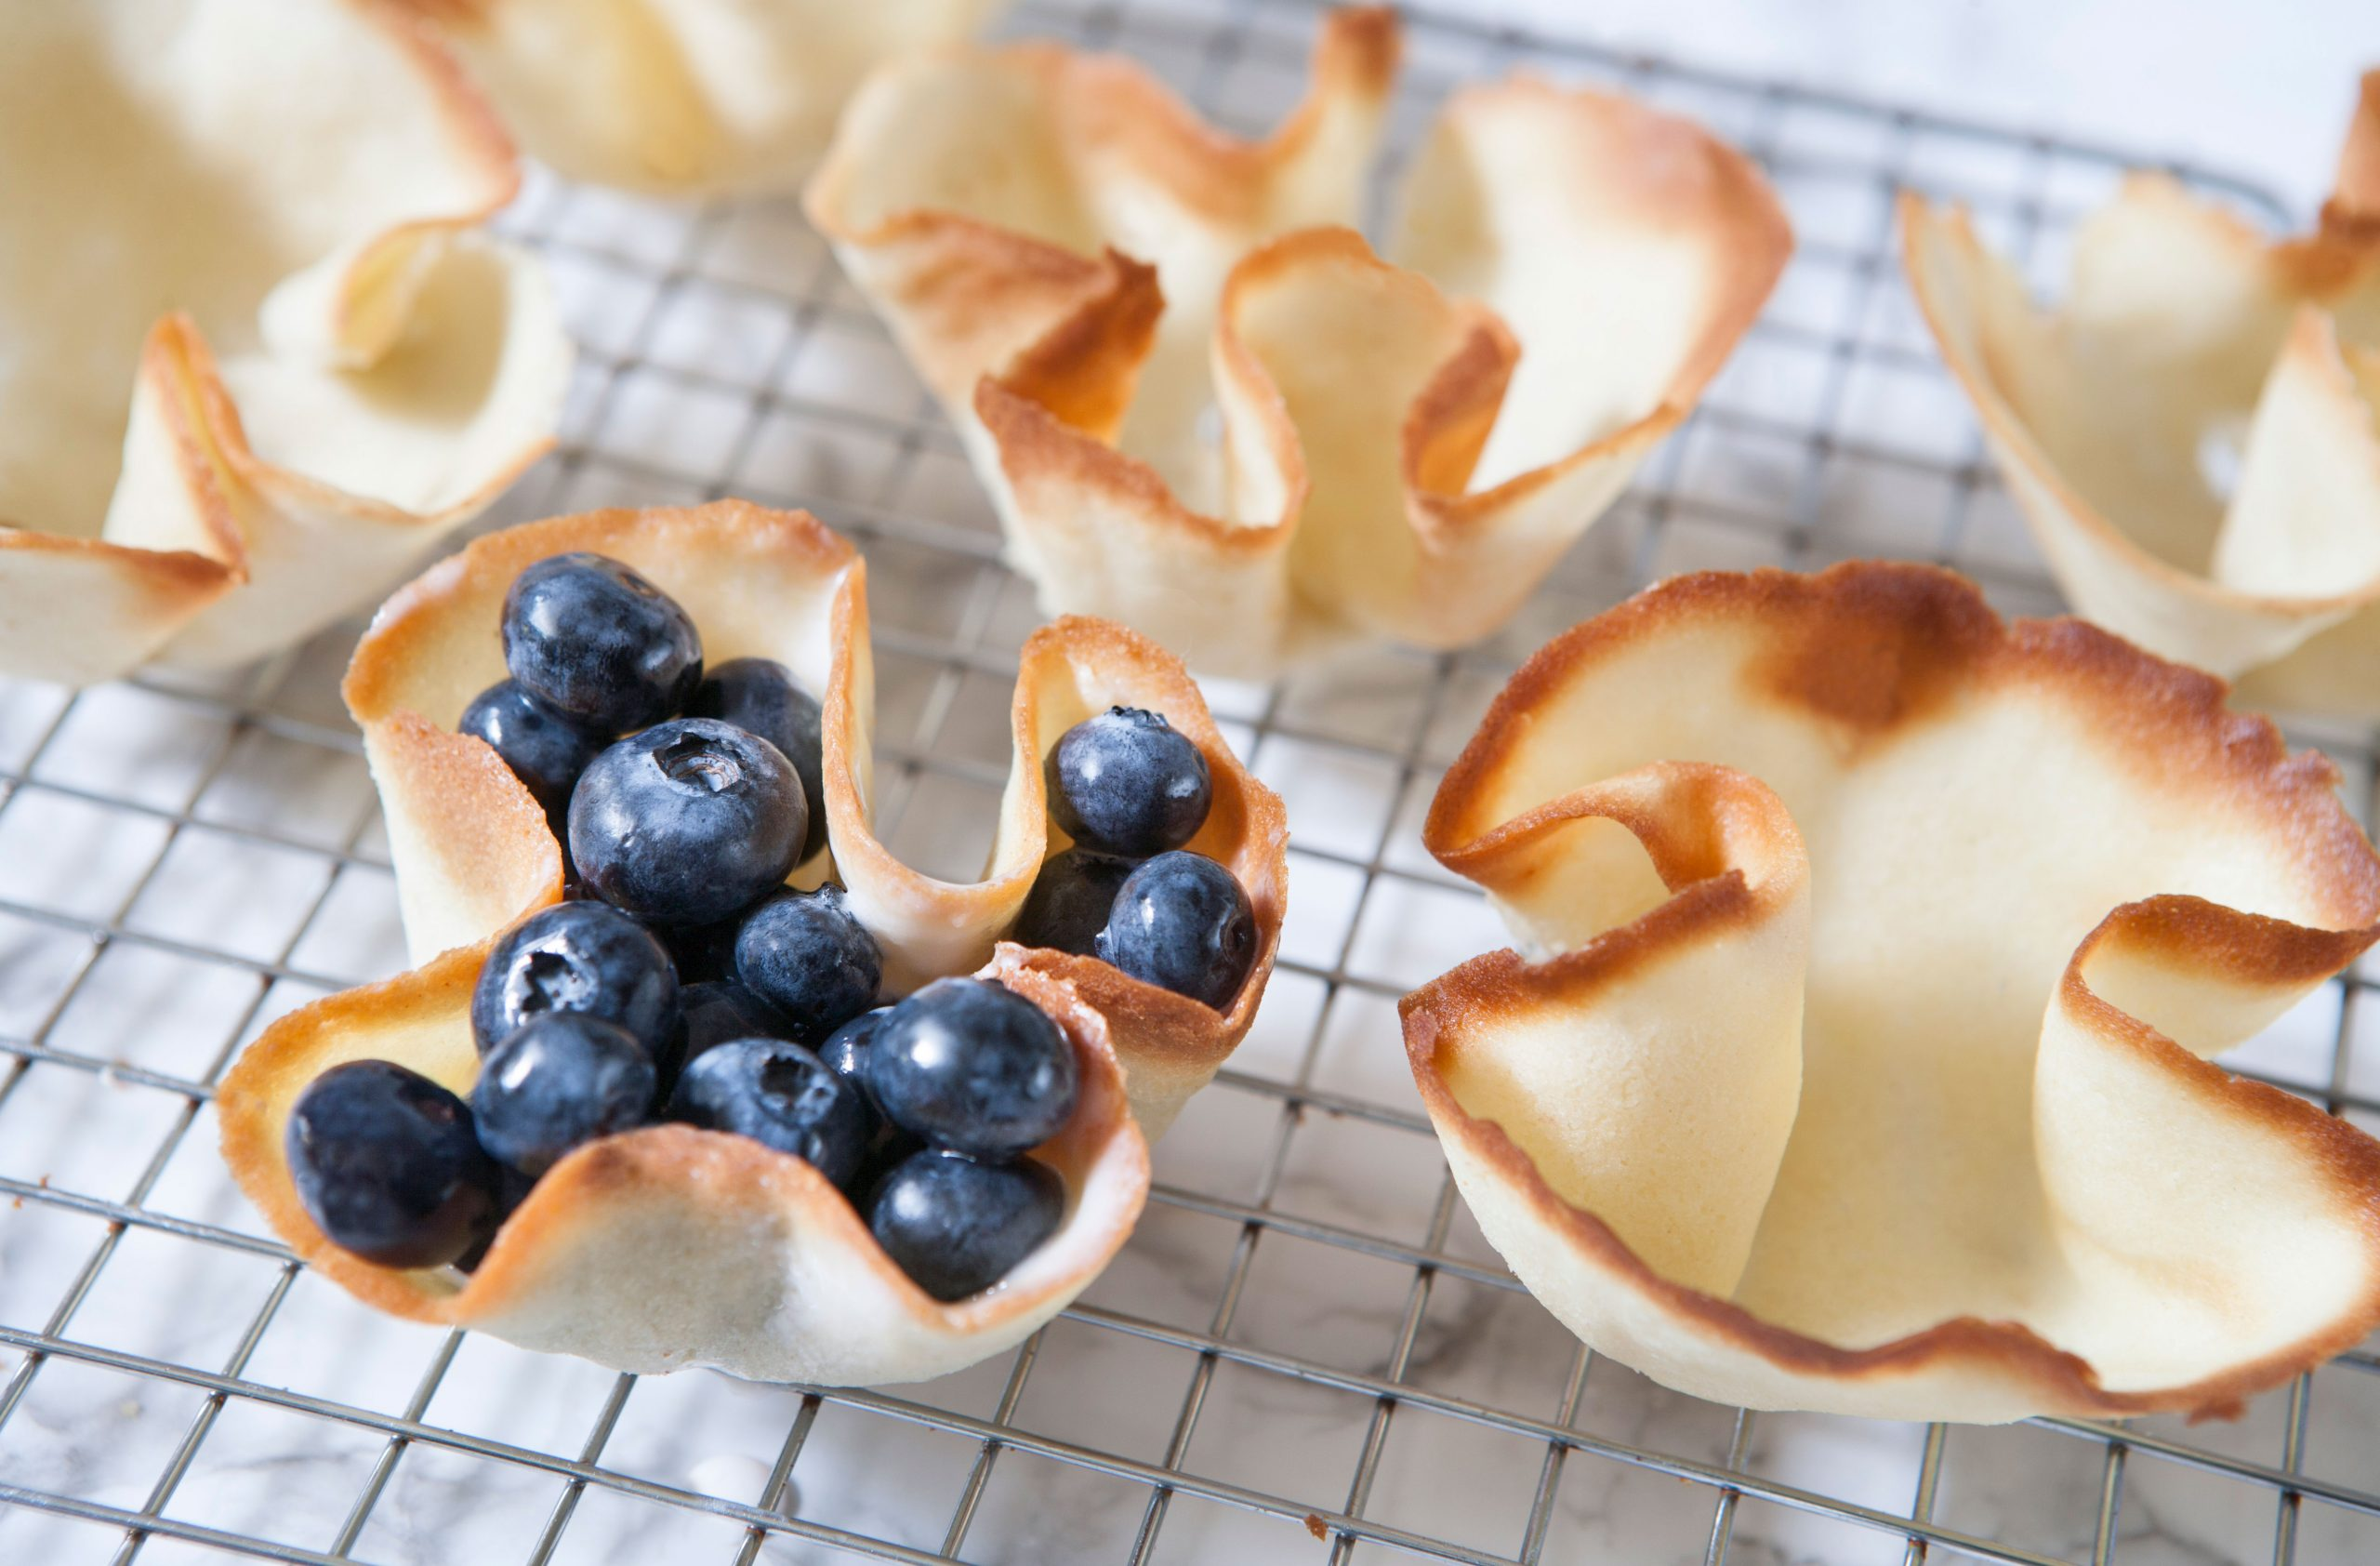 Tuile Biscuits   Baking Recipes